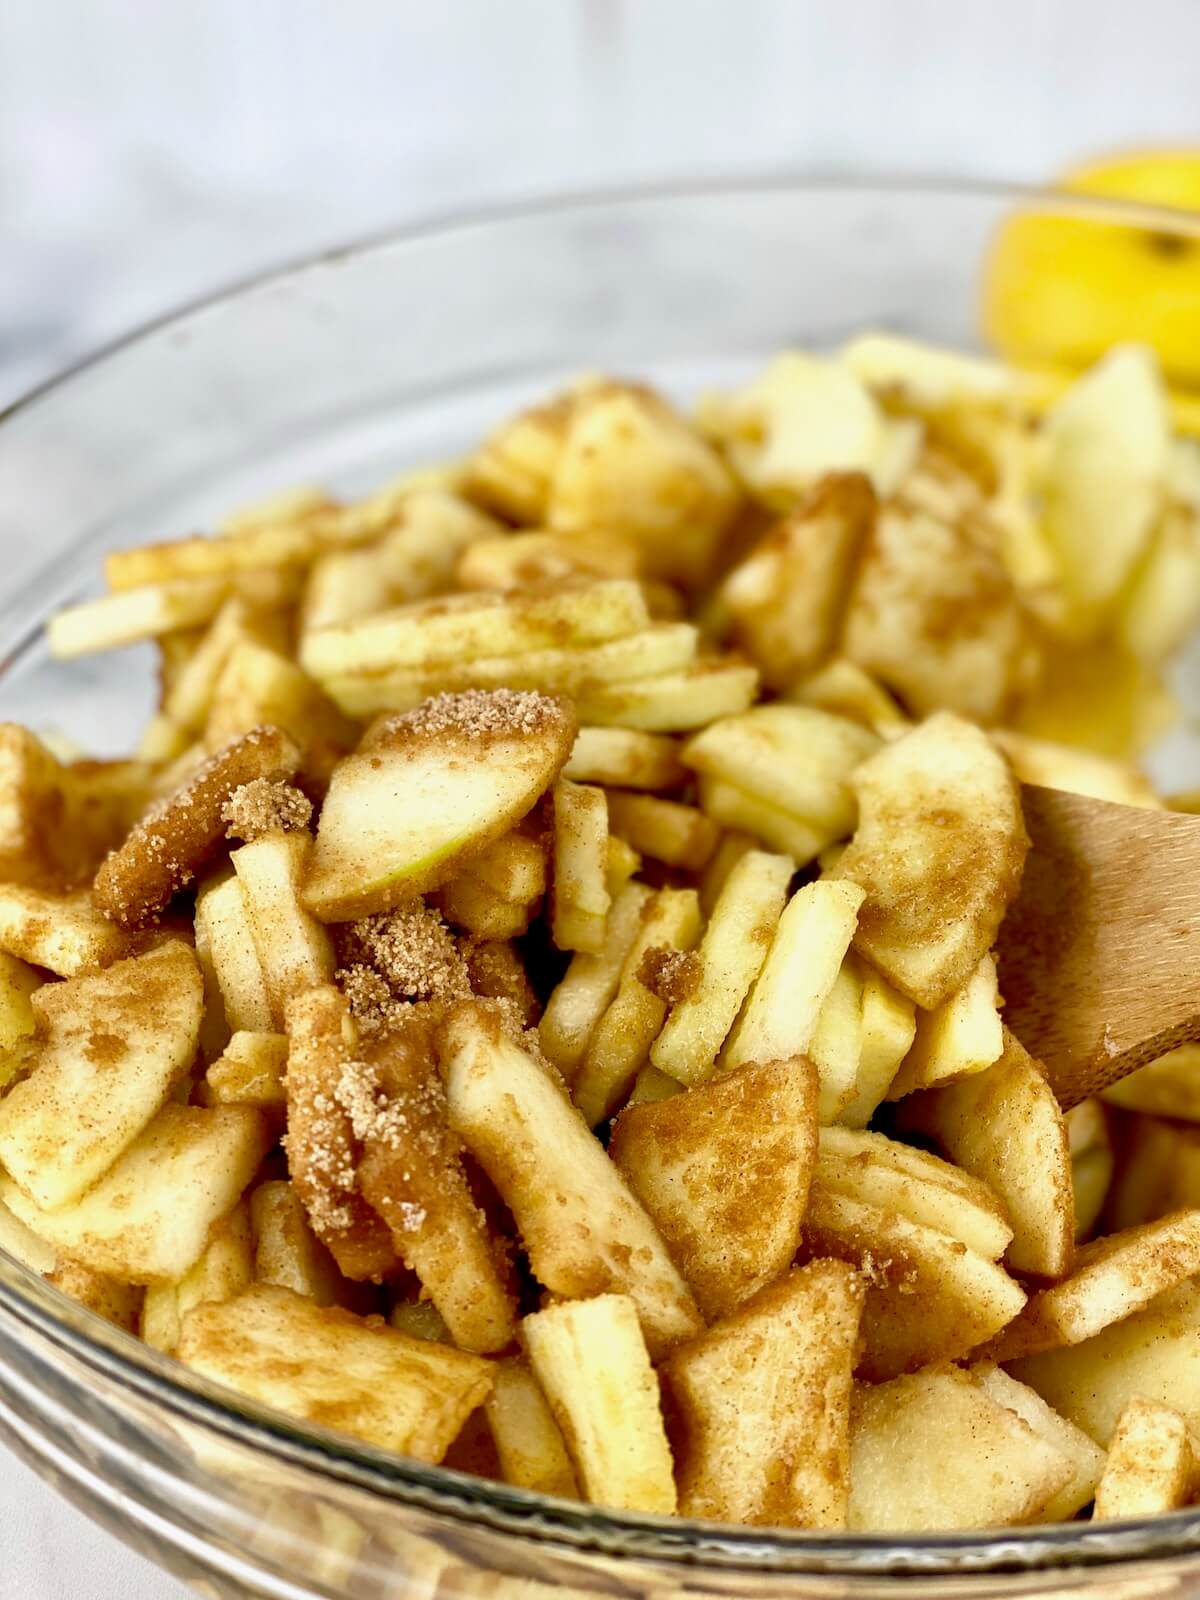 slice apples with brown sugar and cinnamon in medium-size glass bowl